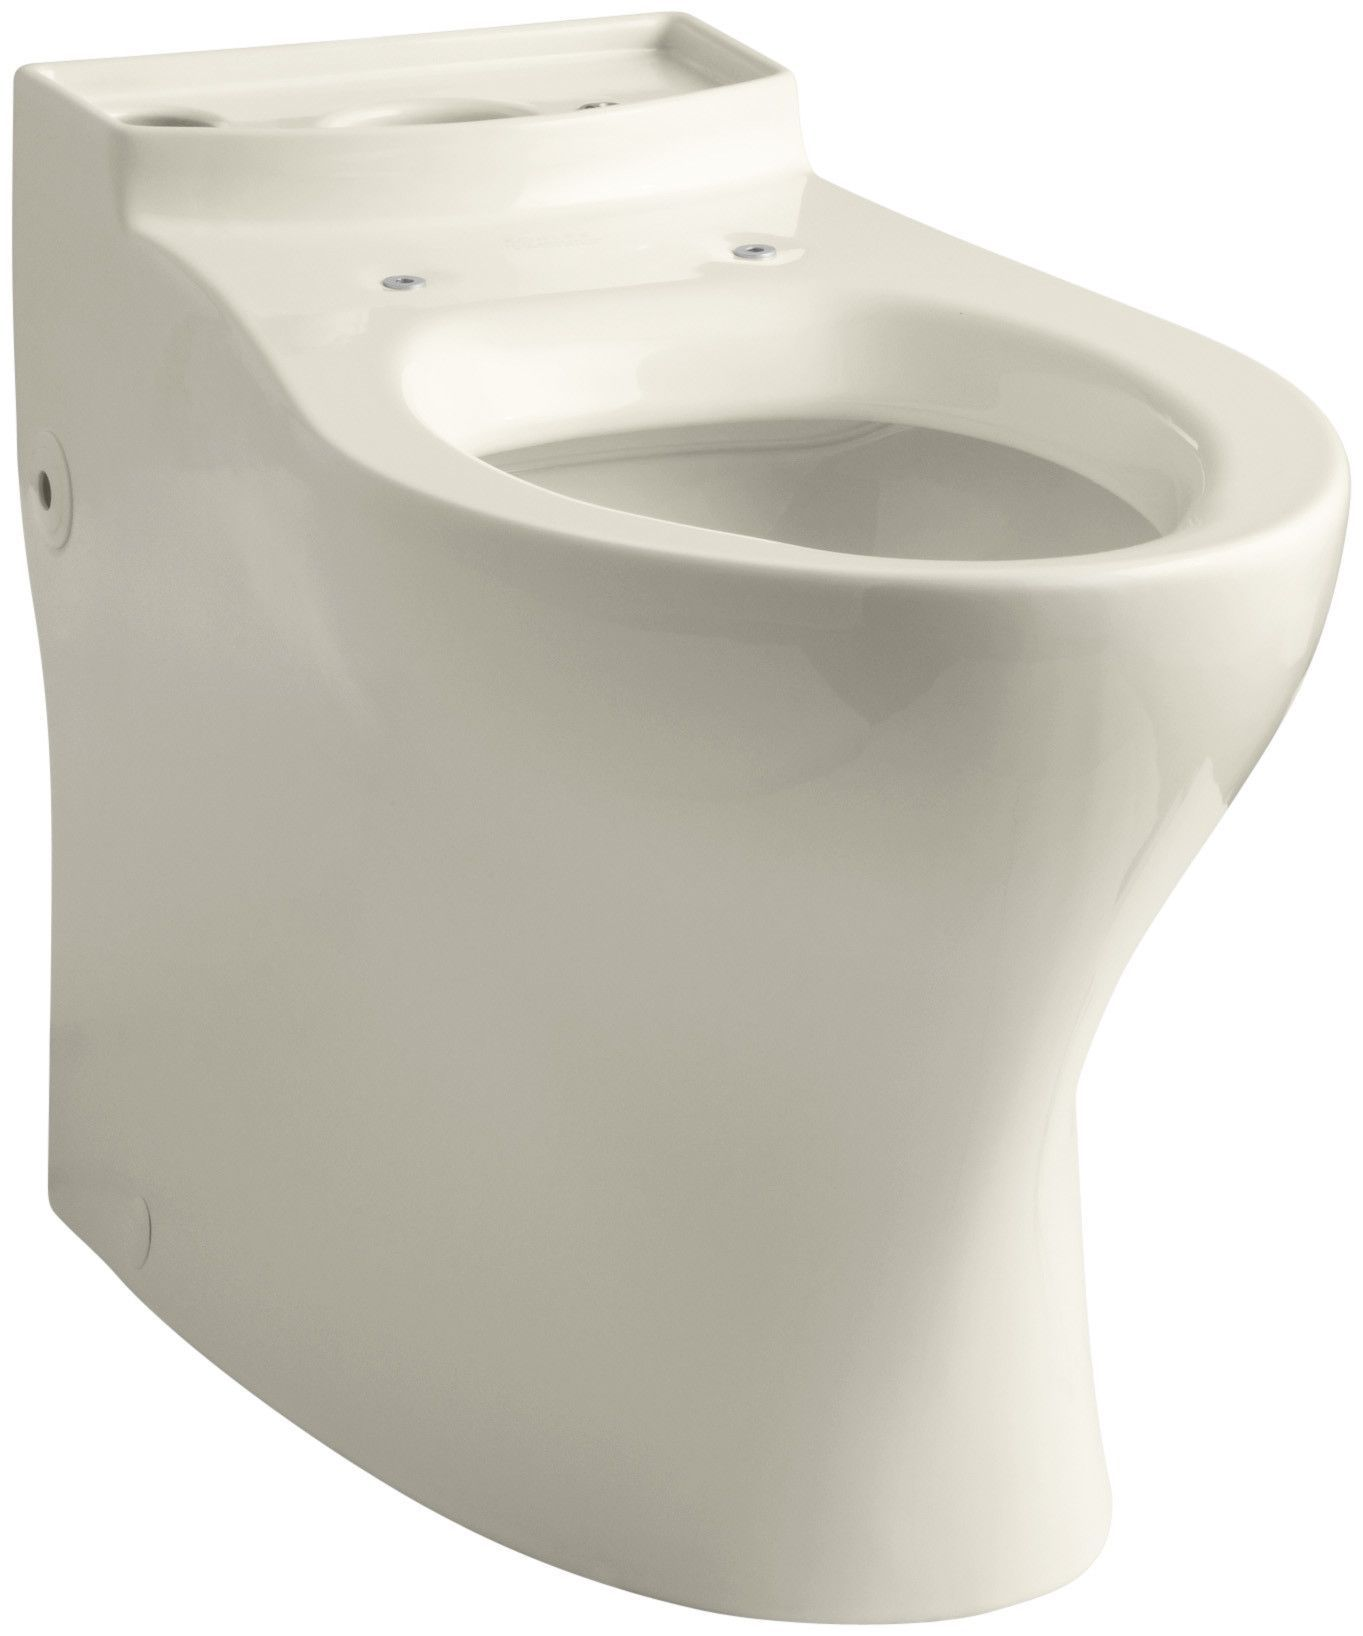 Persuade Curve Comfort Height Elongated Toilet Bowl Toilet Bowl